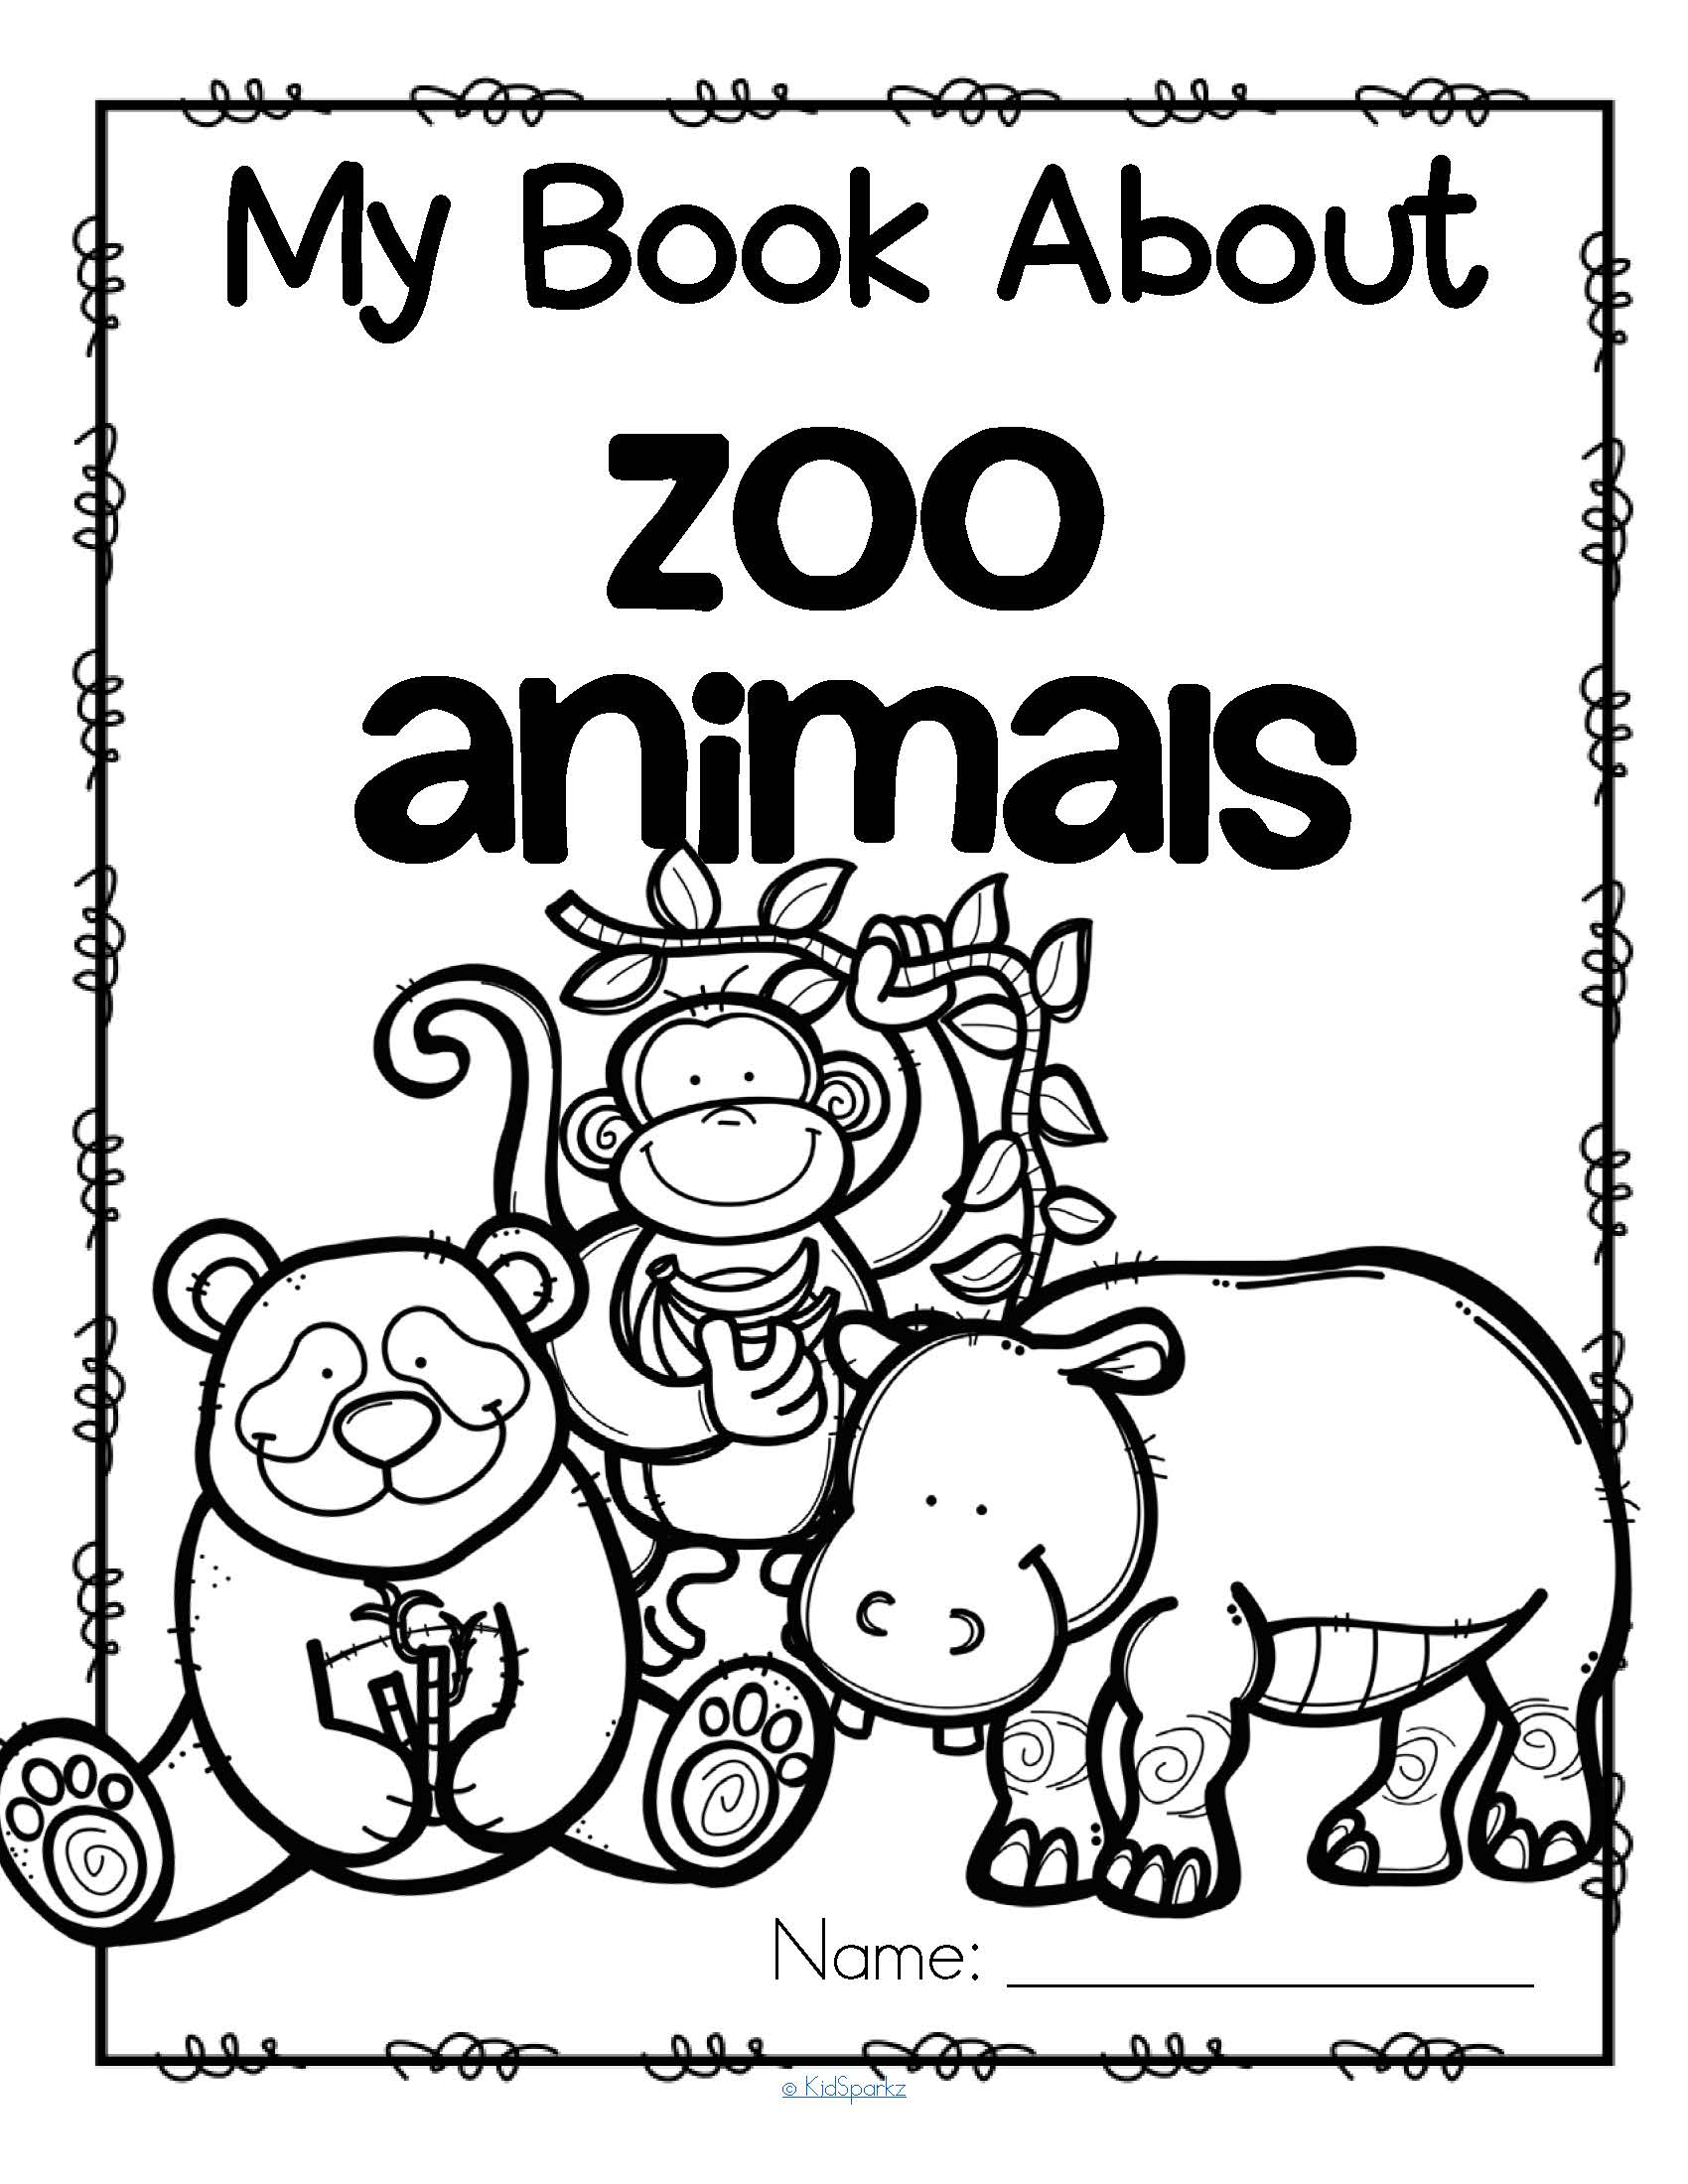 My Book About Zoo Animals